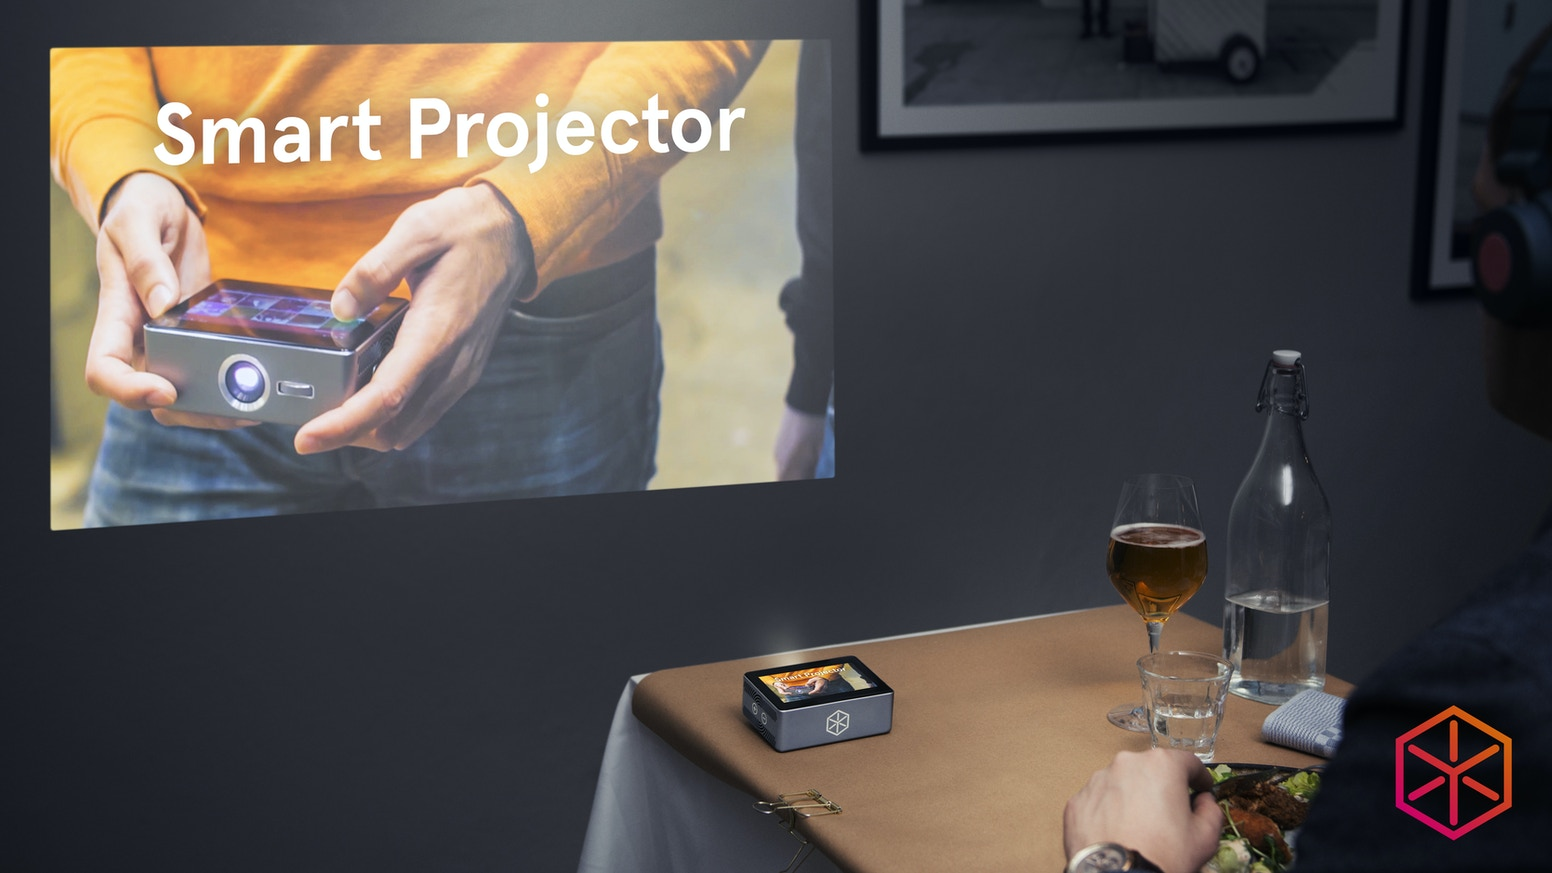 Sweam - Smart Projector